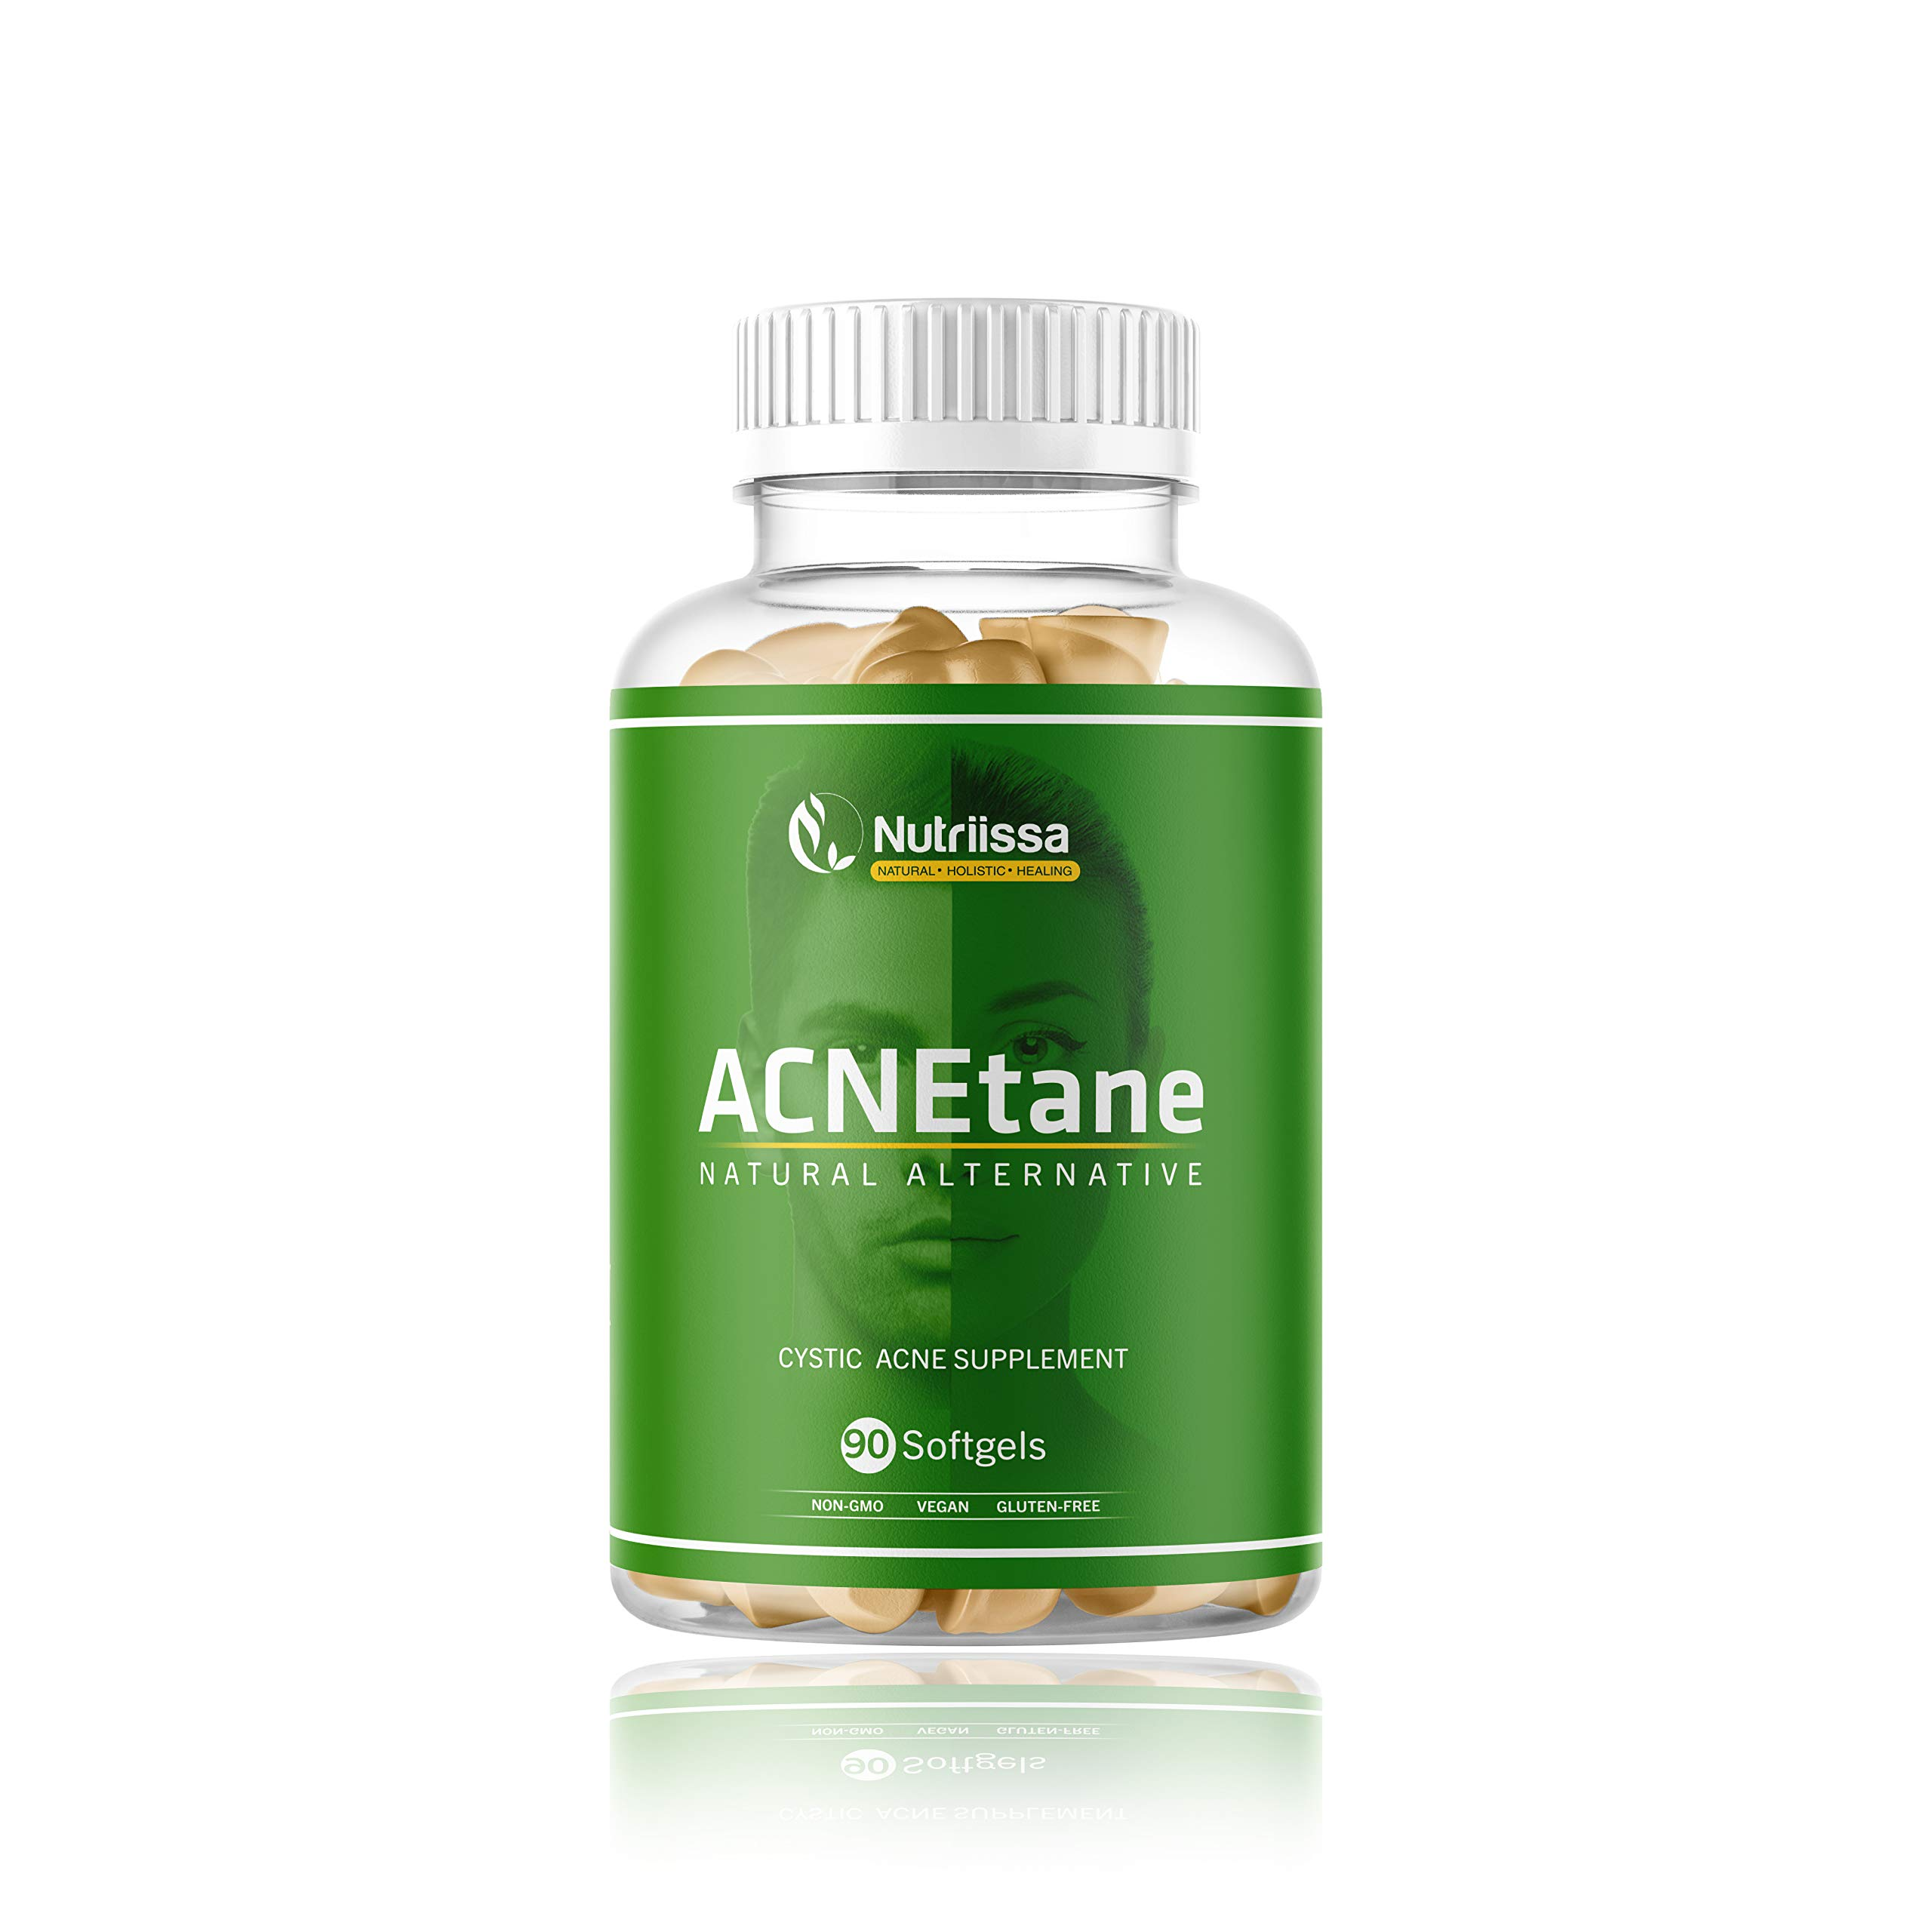 ACNEtane - All Natural Vitamin Supplement for Treating Acne, 90 Veggie Softgels (Treats Hormonal, Puberty, & Cystic Acne Internally)